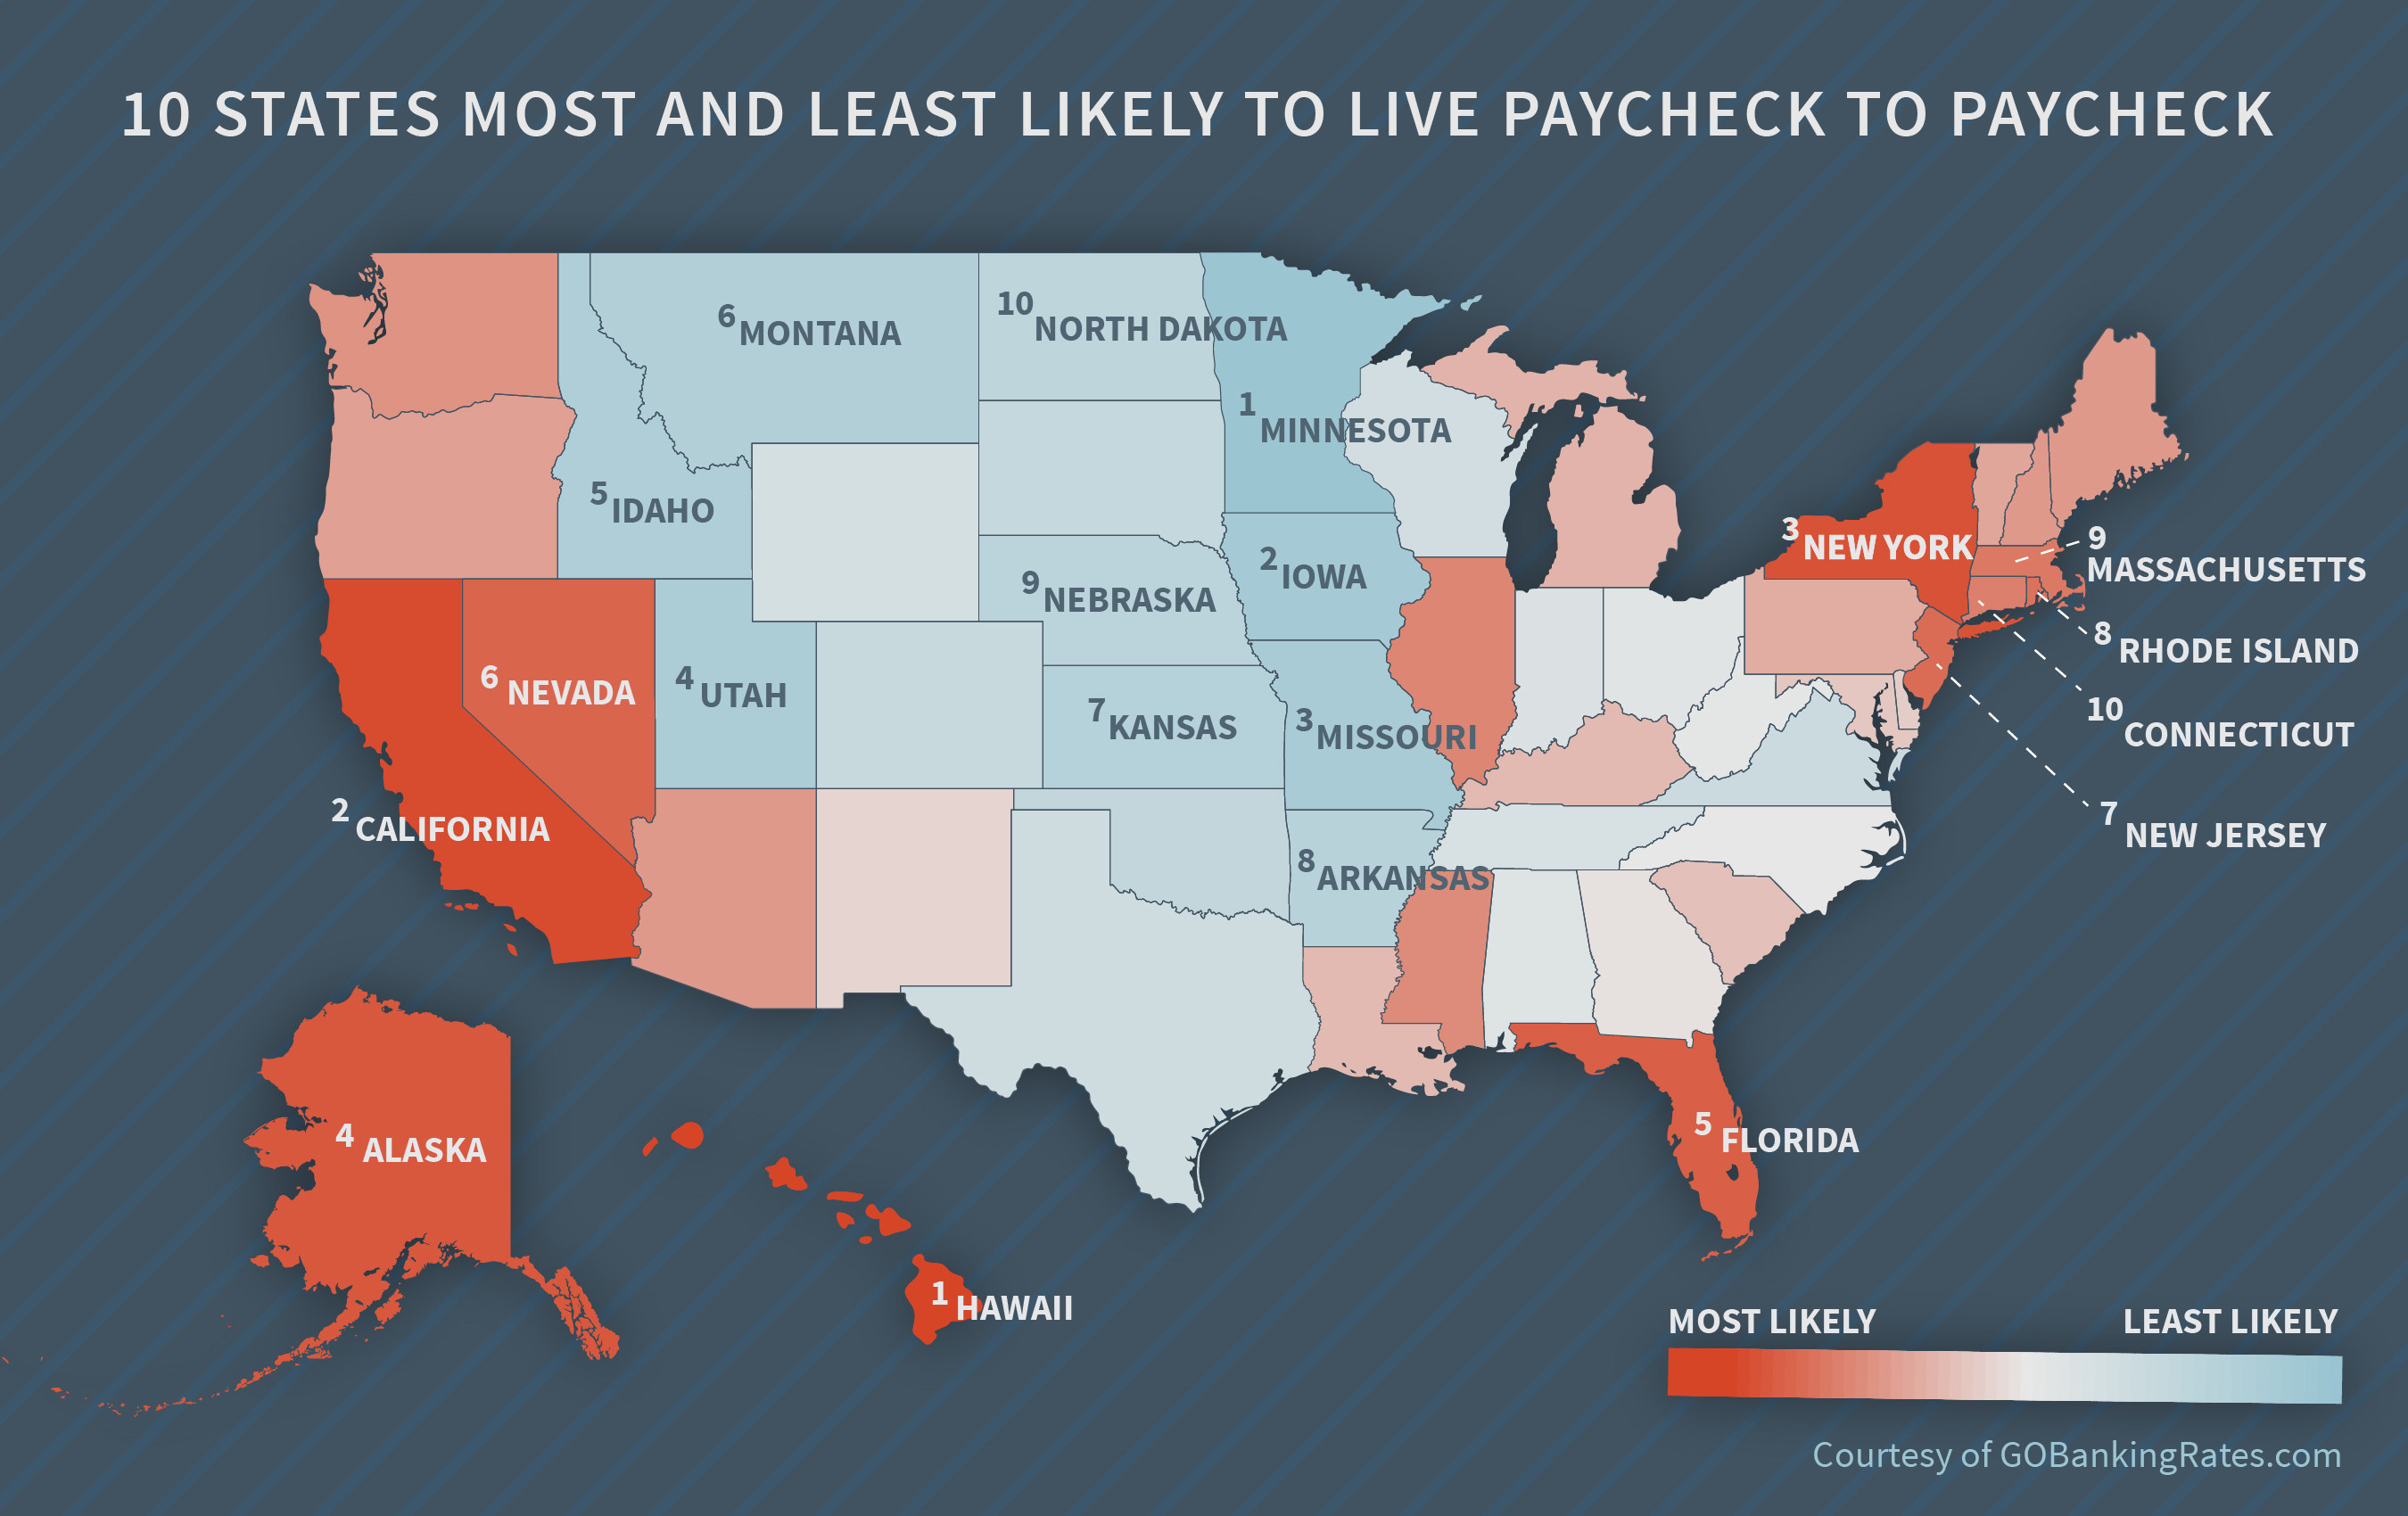 Hawaii And California Top States Where People Are Likely To Live Paycheck To Paycheck I see there is another problem with california, where else is nice to live? pr newswire